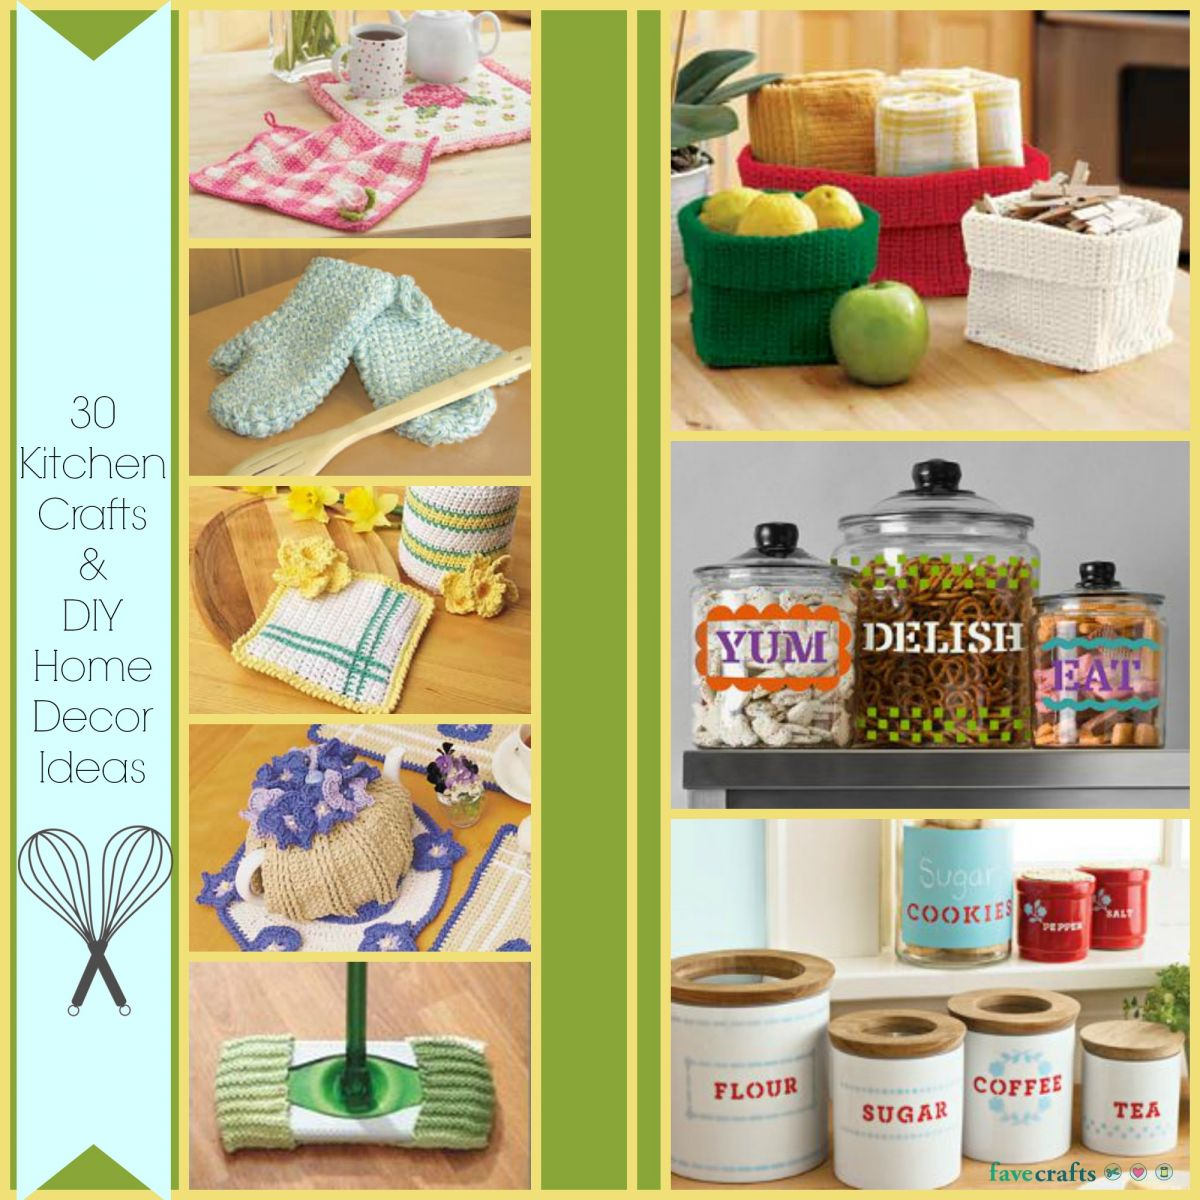 30 kitchen crafts and diy home decor ideas craft project ideas for